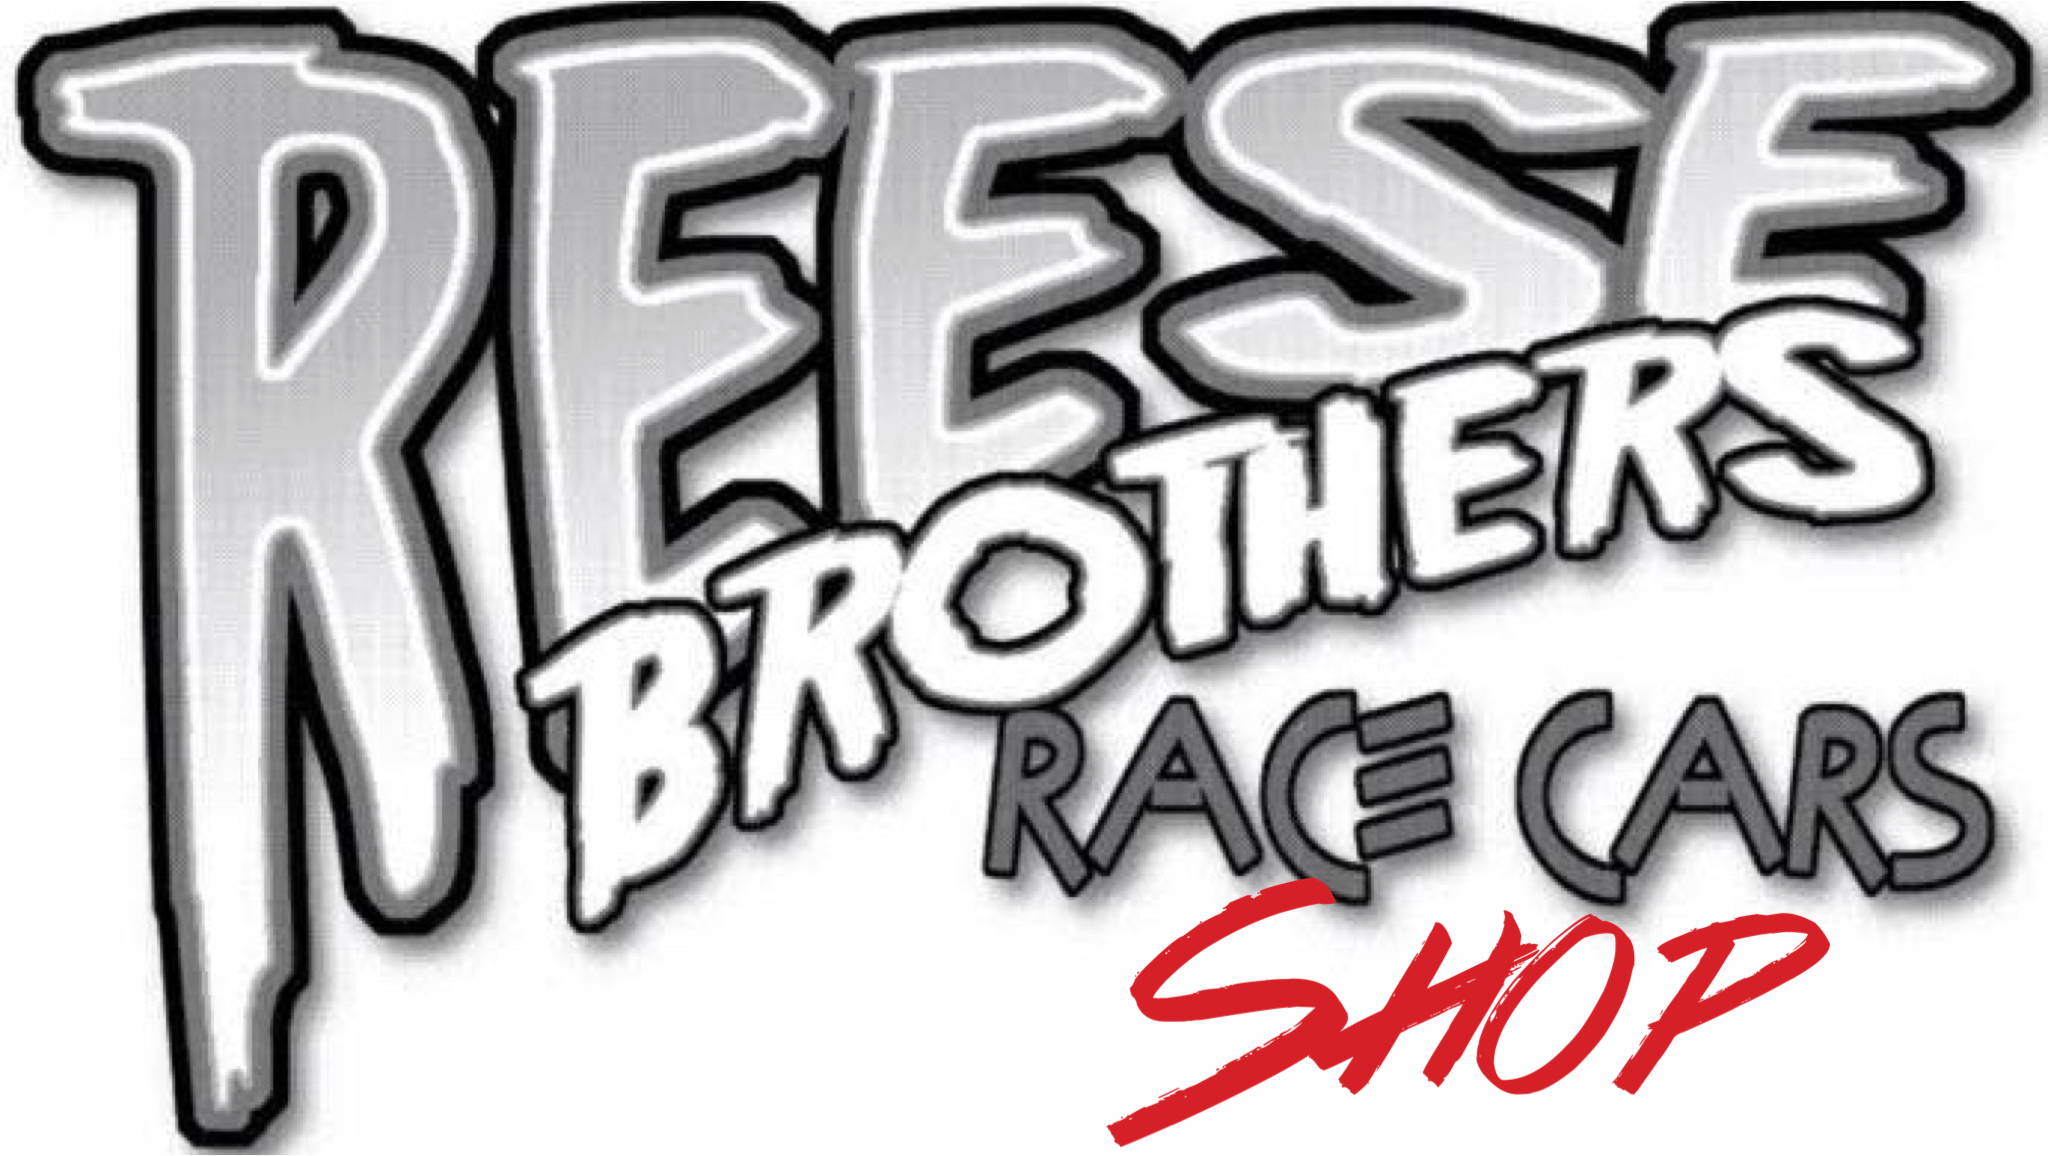 Reese Brothers Race Cars's account image